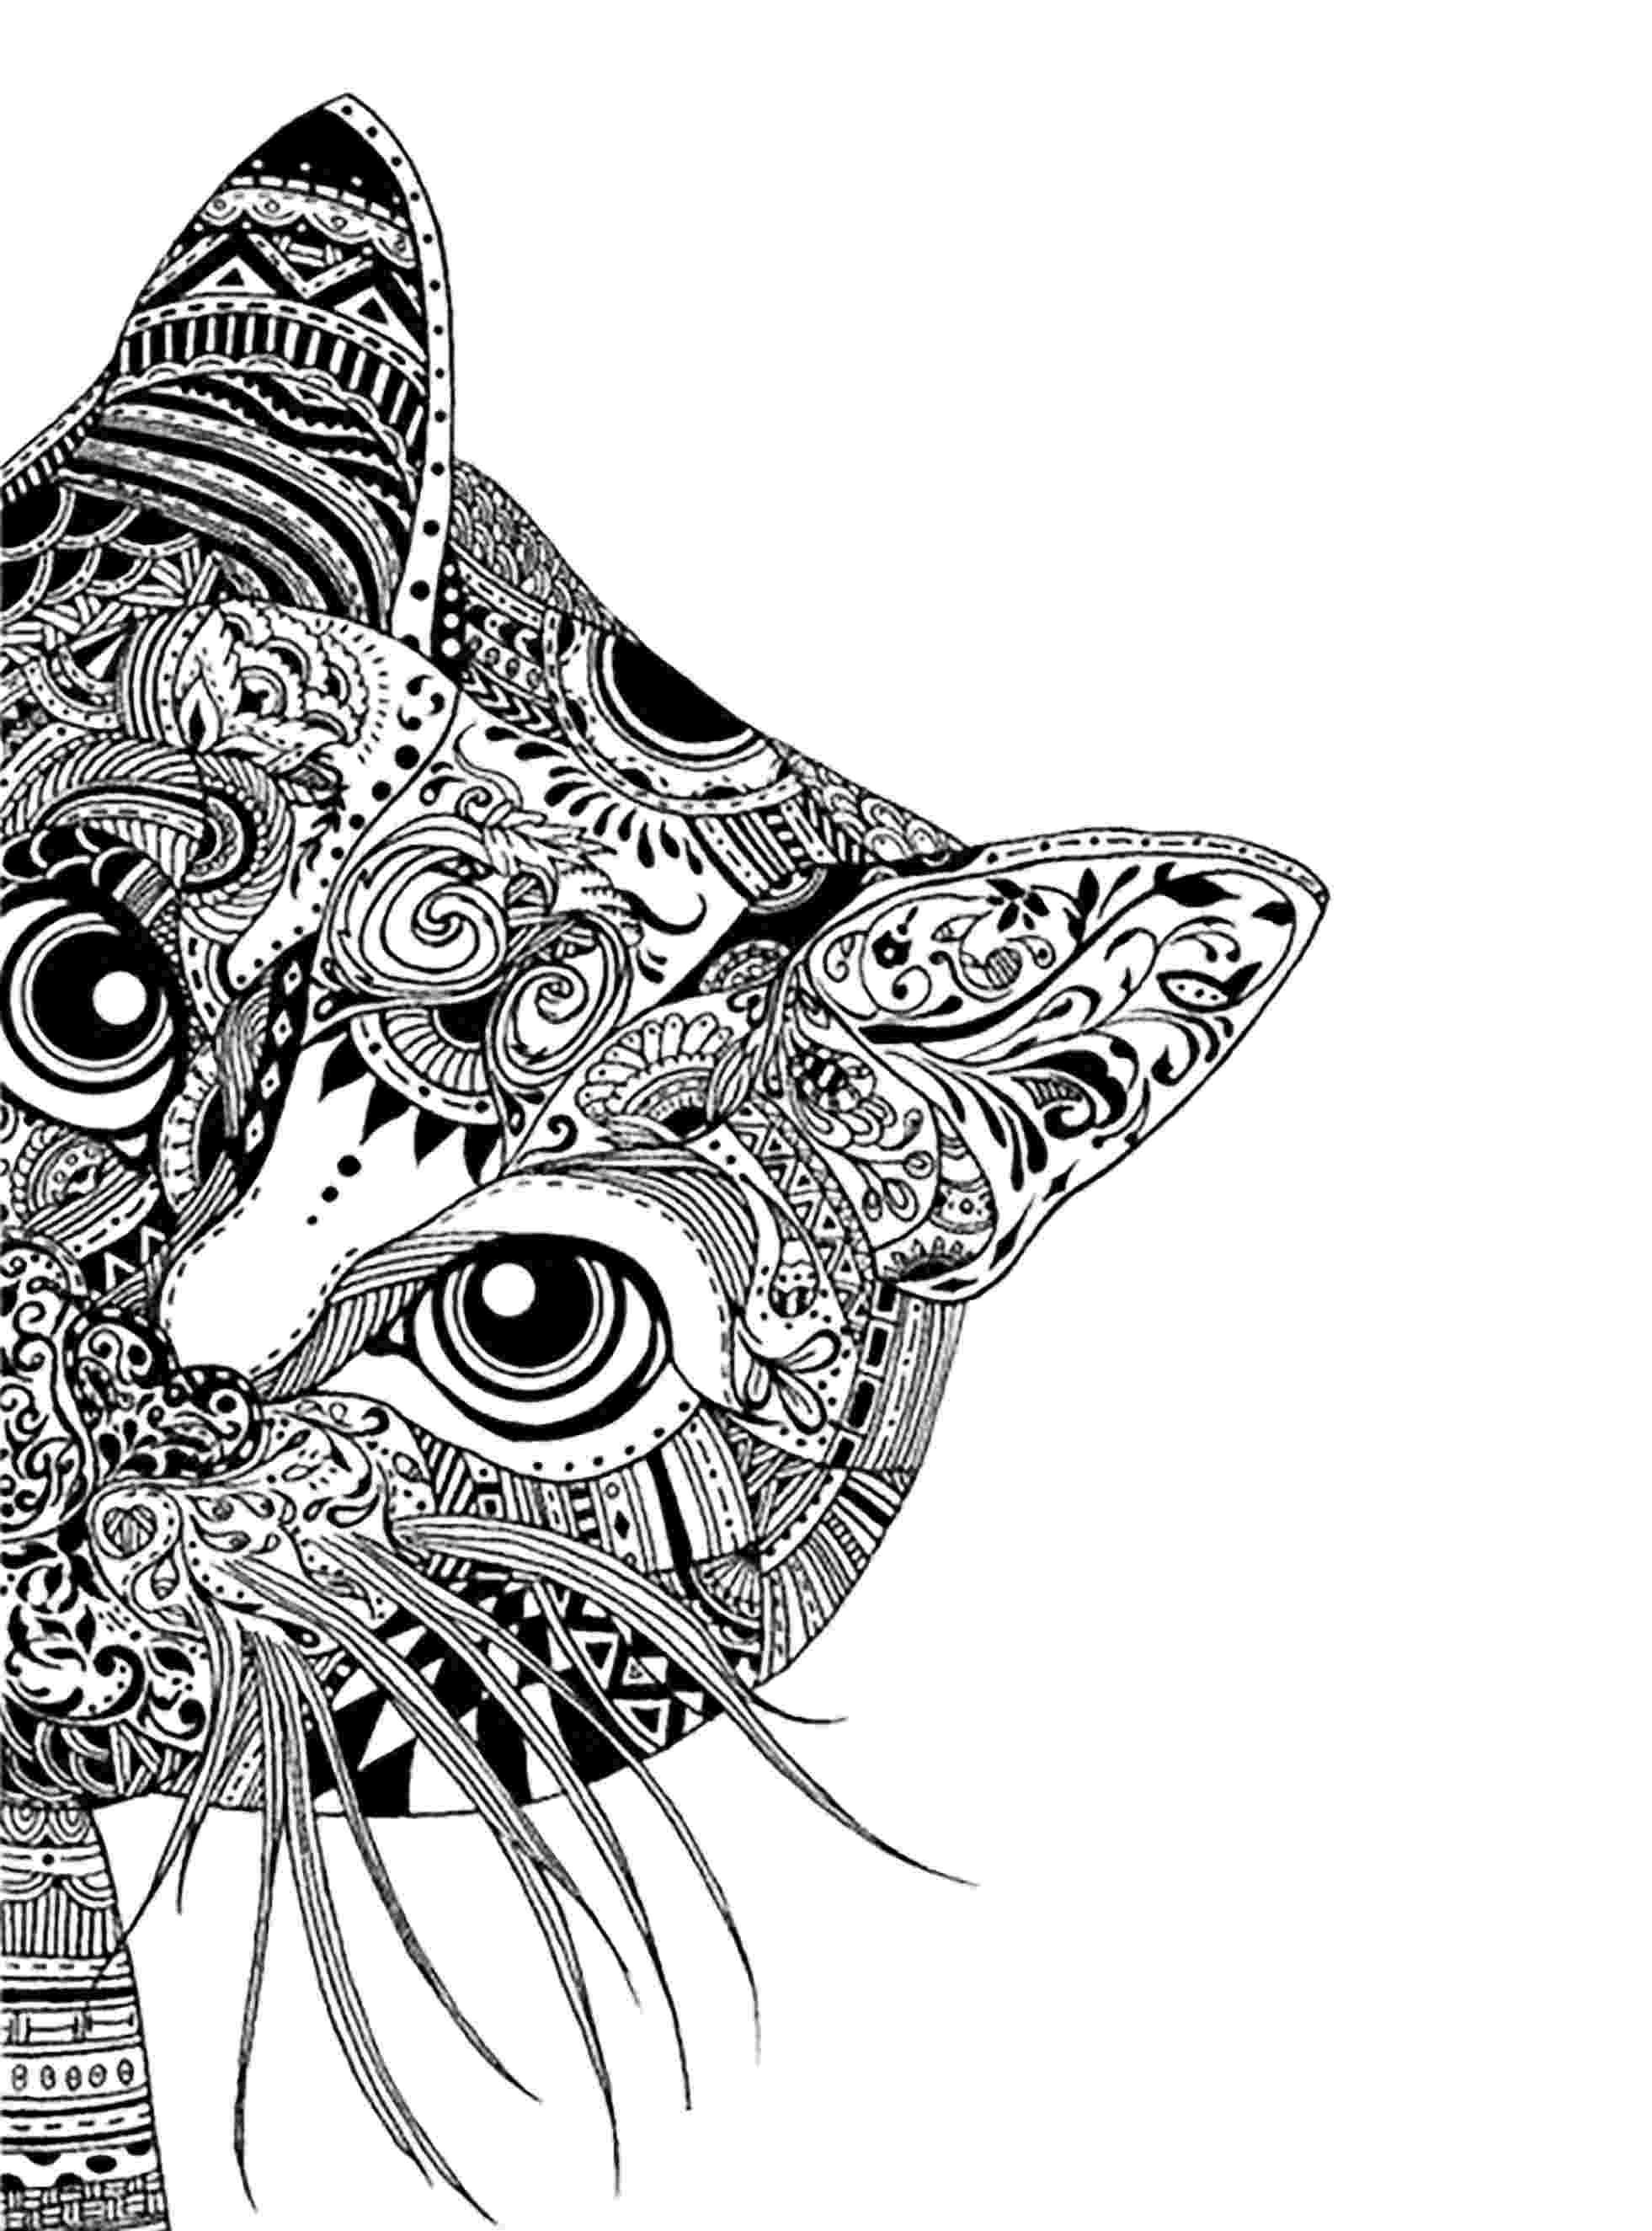 adult coloring pages online complex coloring pages for teens and adults best adult online pages coloring